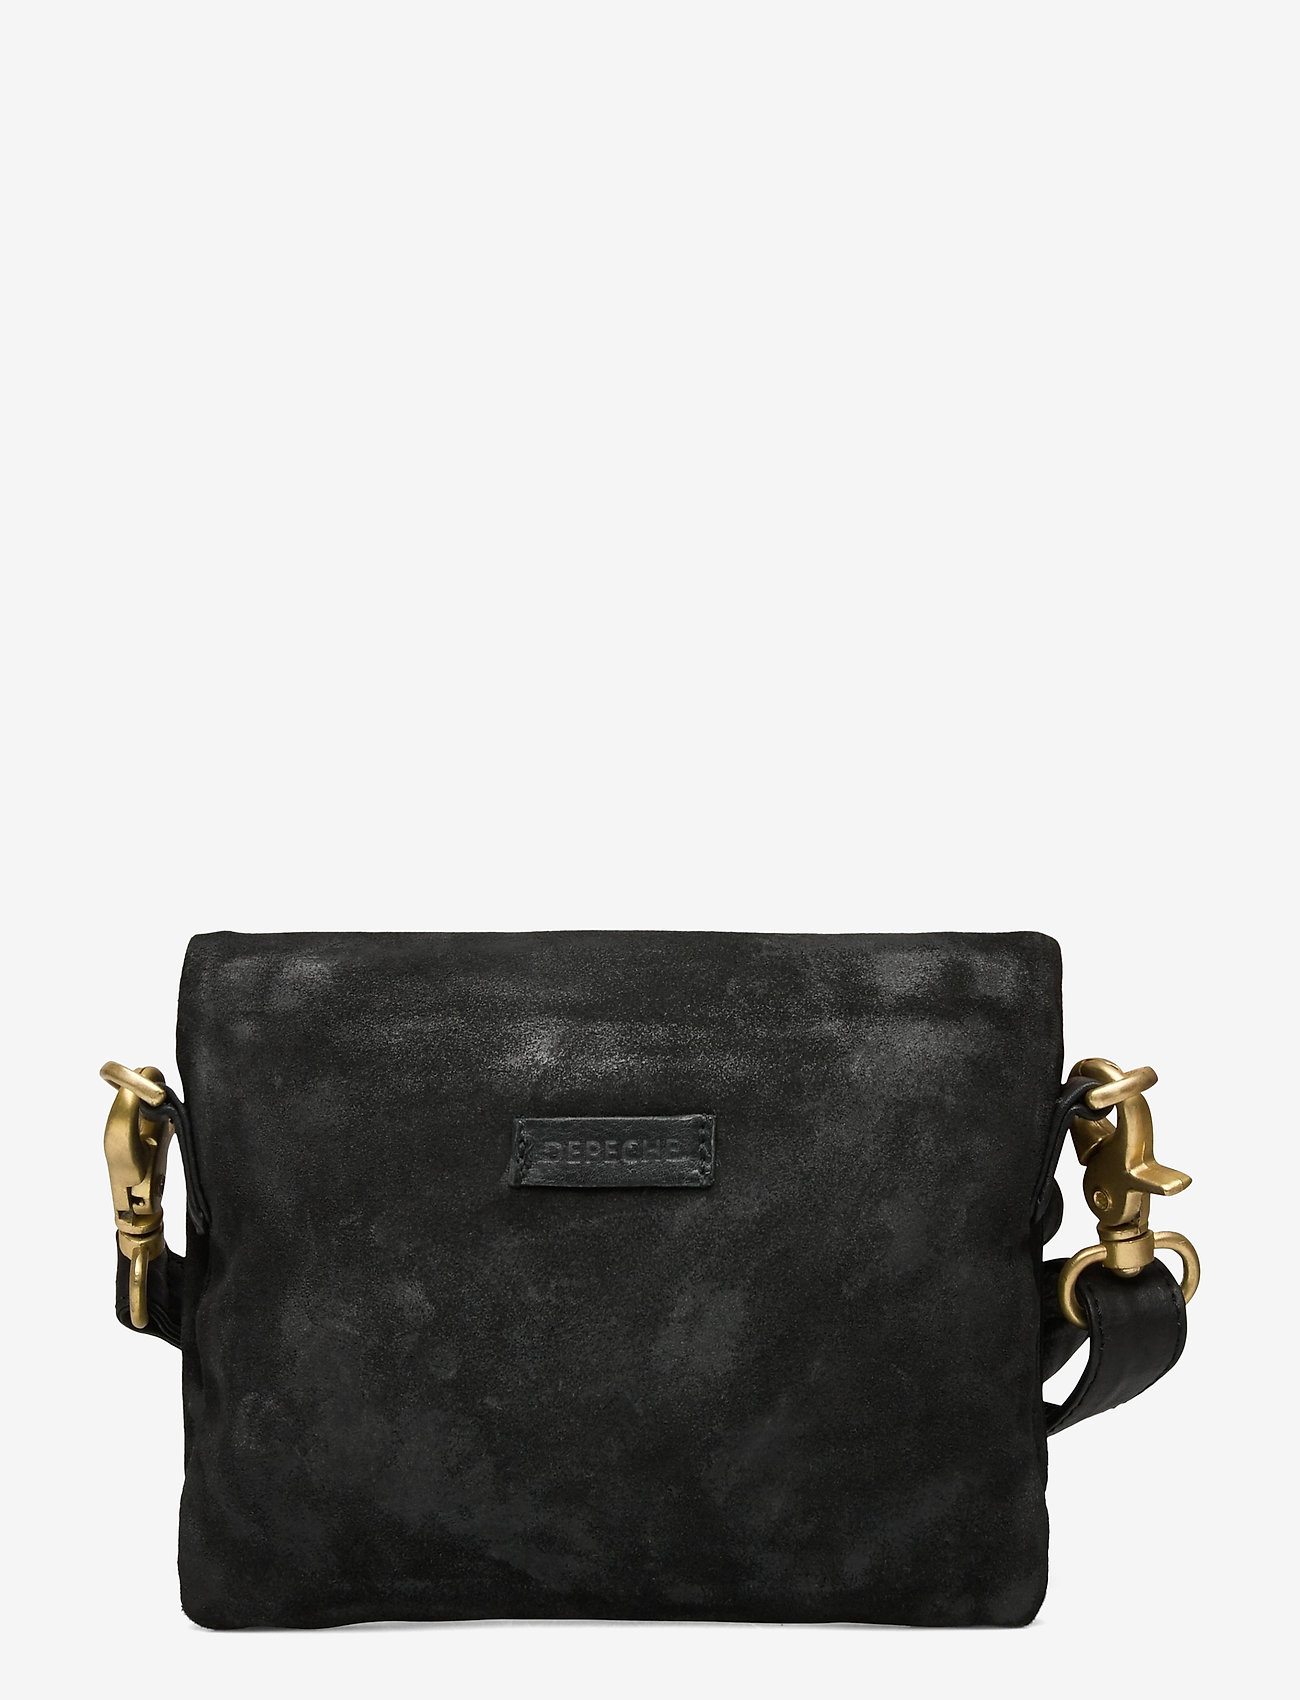 DEPECHE - Small bag / Clutch - clutches - 099 black (nero) - 1